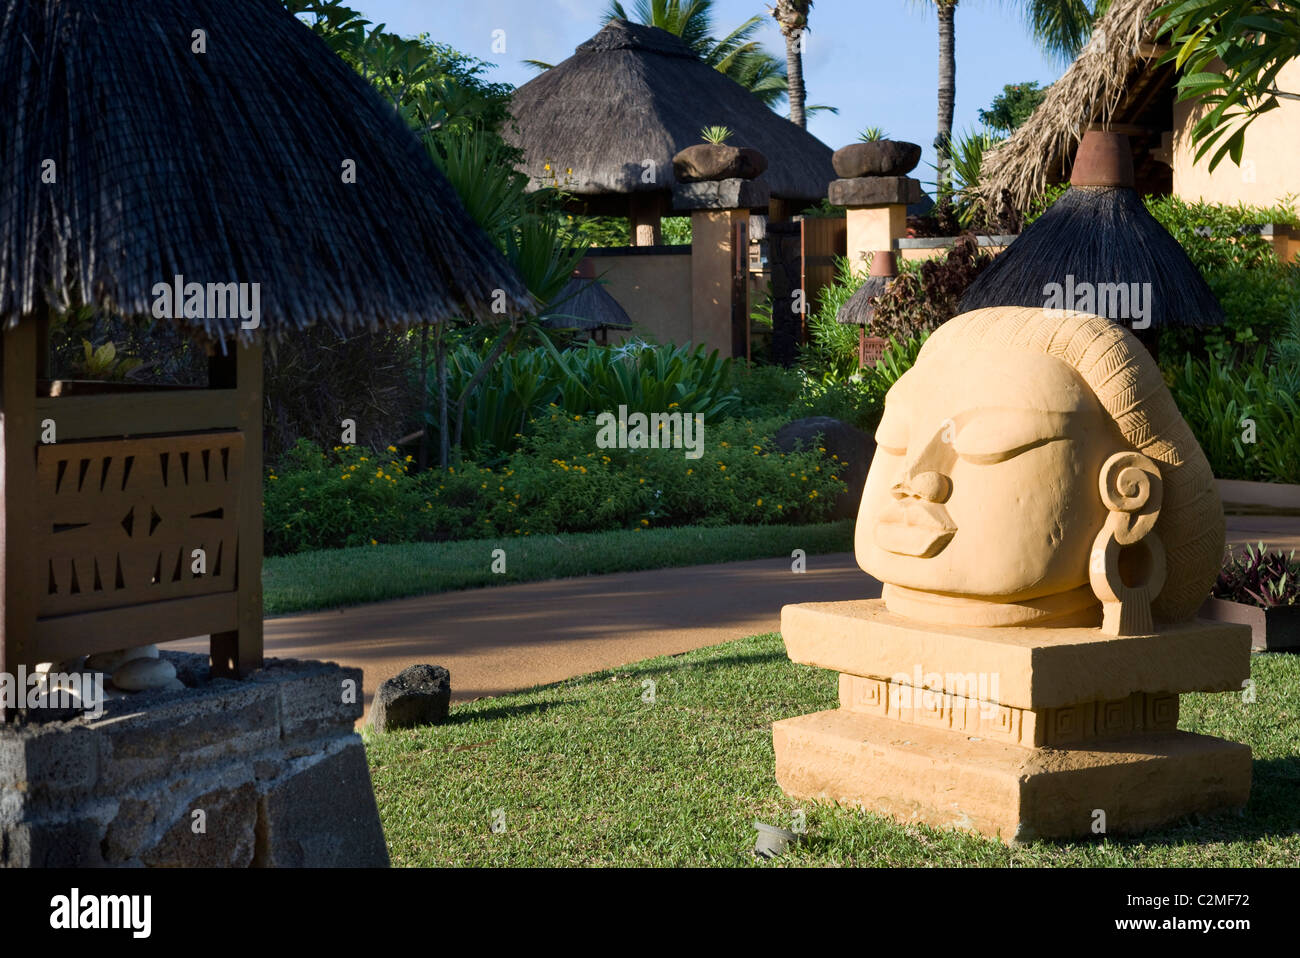 Sub-tropical gardens with large sculptural head at The Oberoi - Stock Image